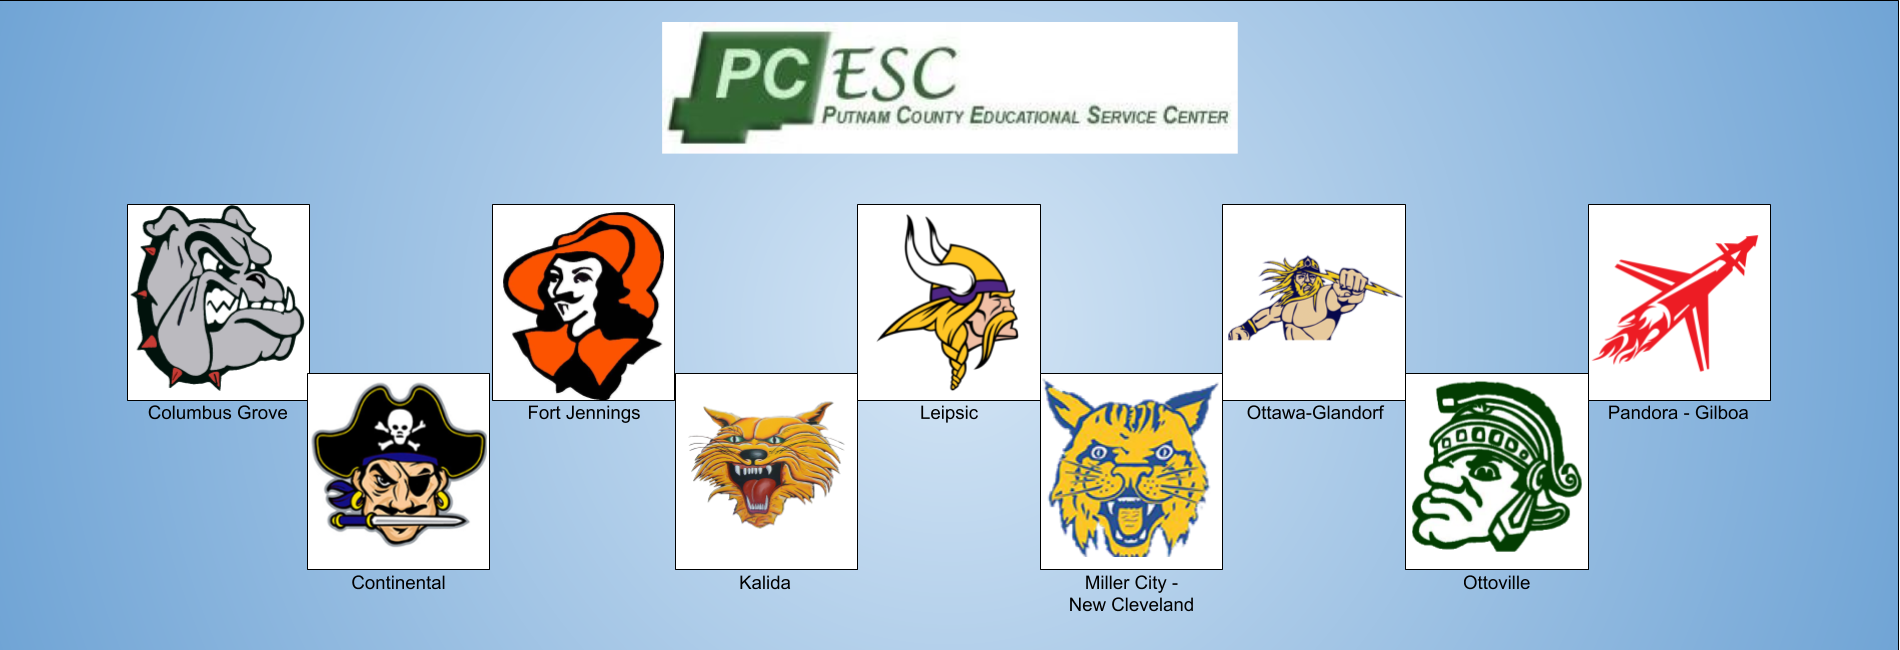 Putnam County School Districts